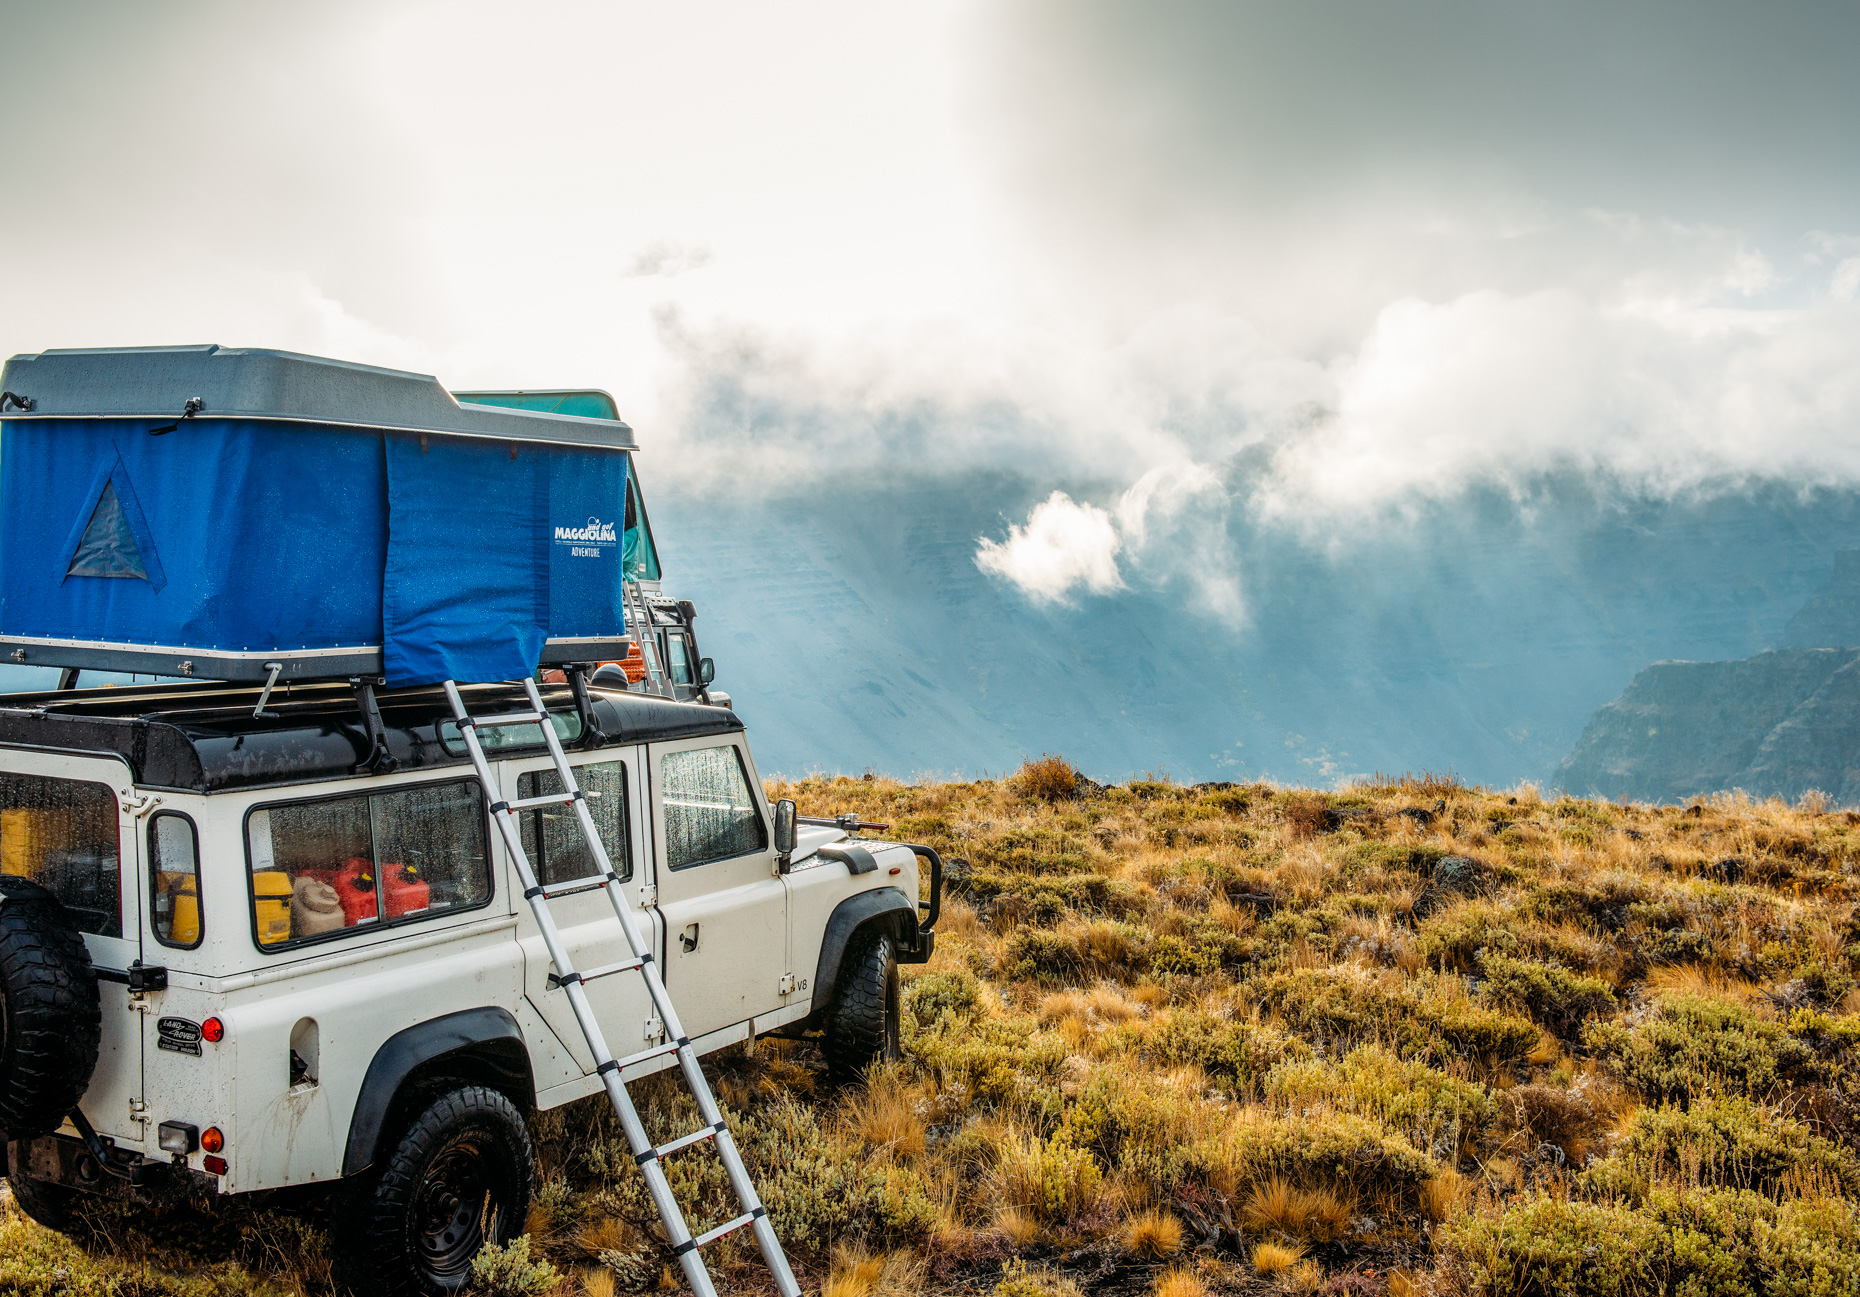 Outdoor Adventure Overlanding Photography